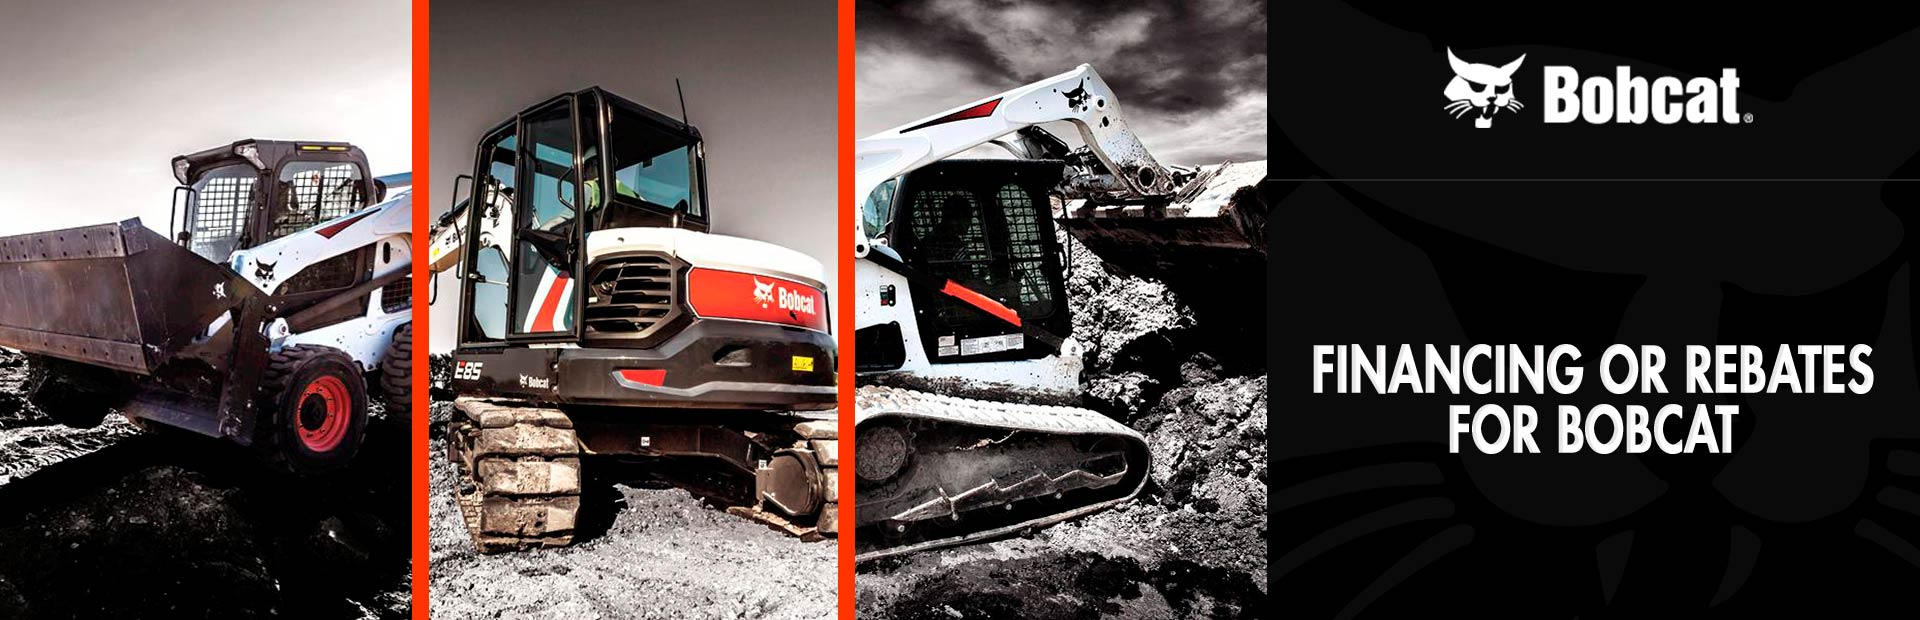 Financing or Rebates for Bobcat